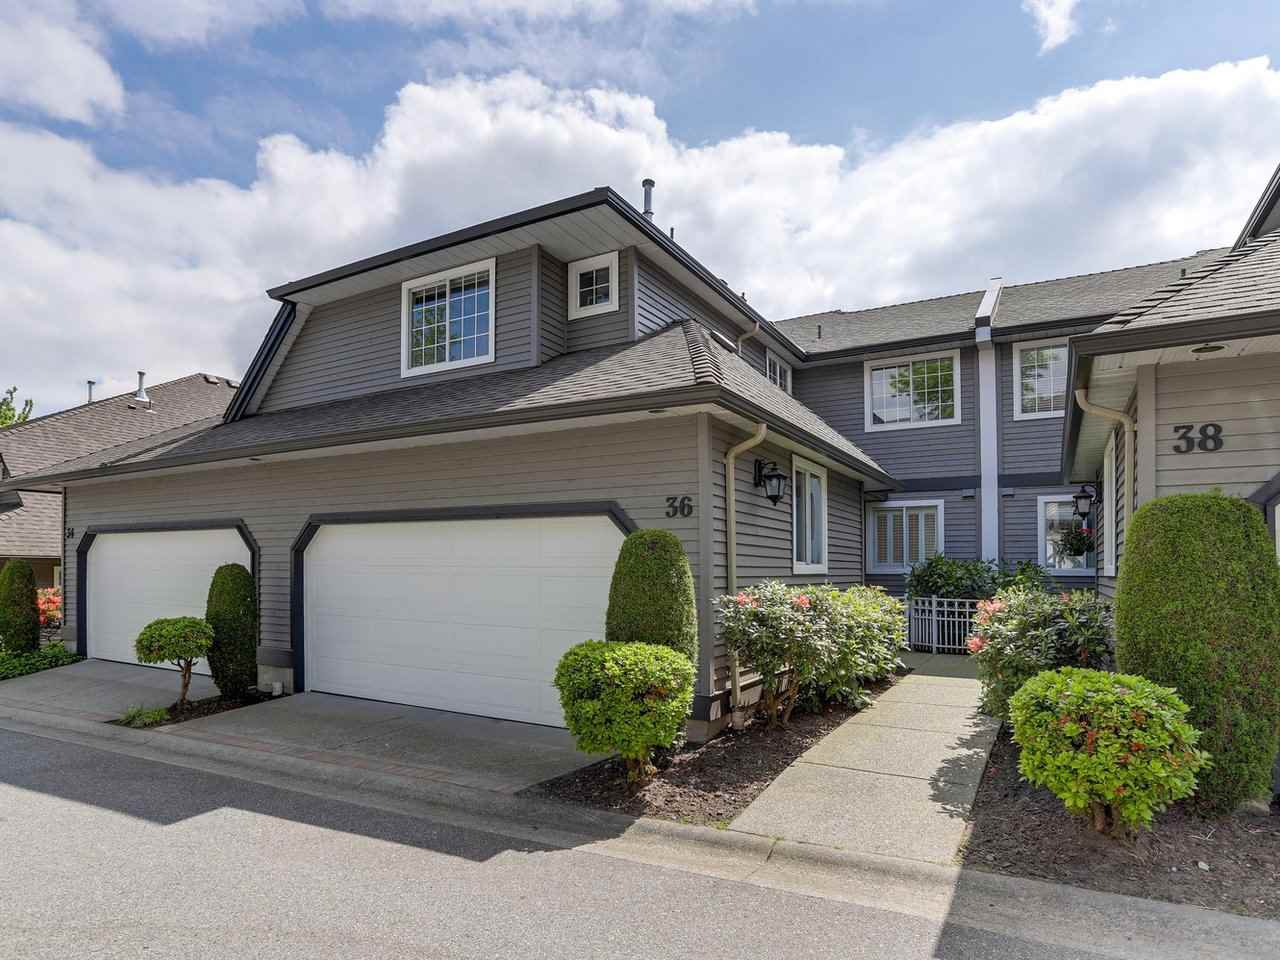 Main Photo: 36 2615 FORTRESS DRIVE in : Citadel PQ Townhouse for sale : MLS®# R2270373